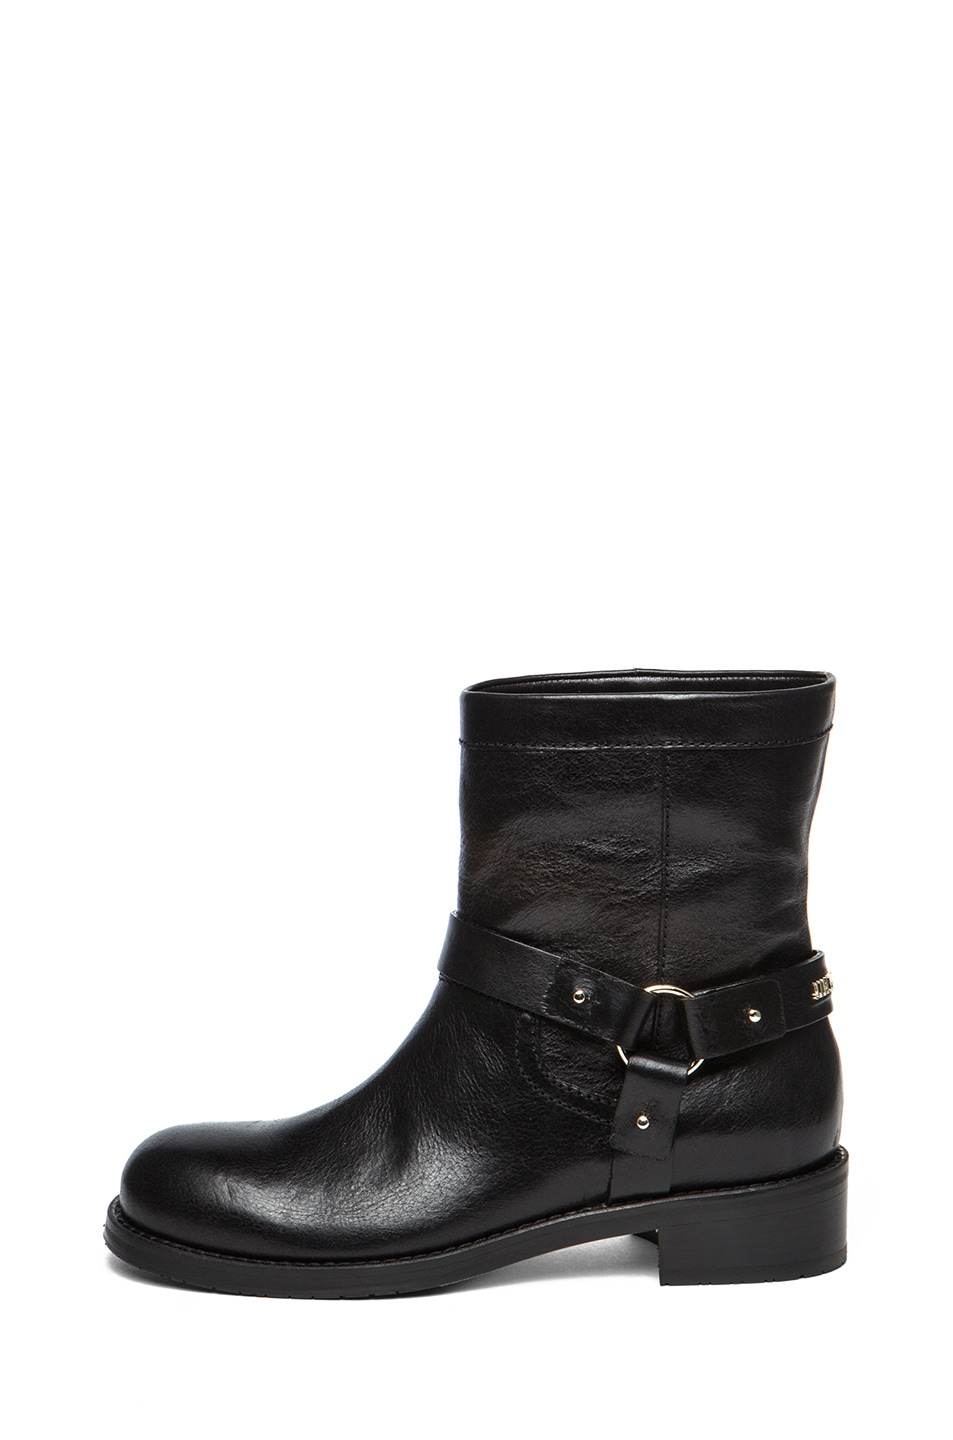 Image 1 of Jimmy Choo Dixie Shiny Calfskin Leather Flat Ankle Boot in Black